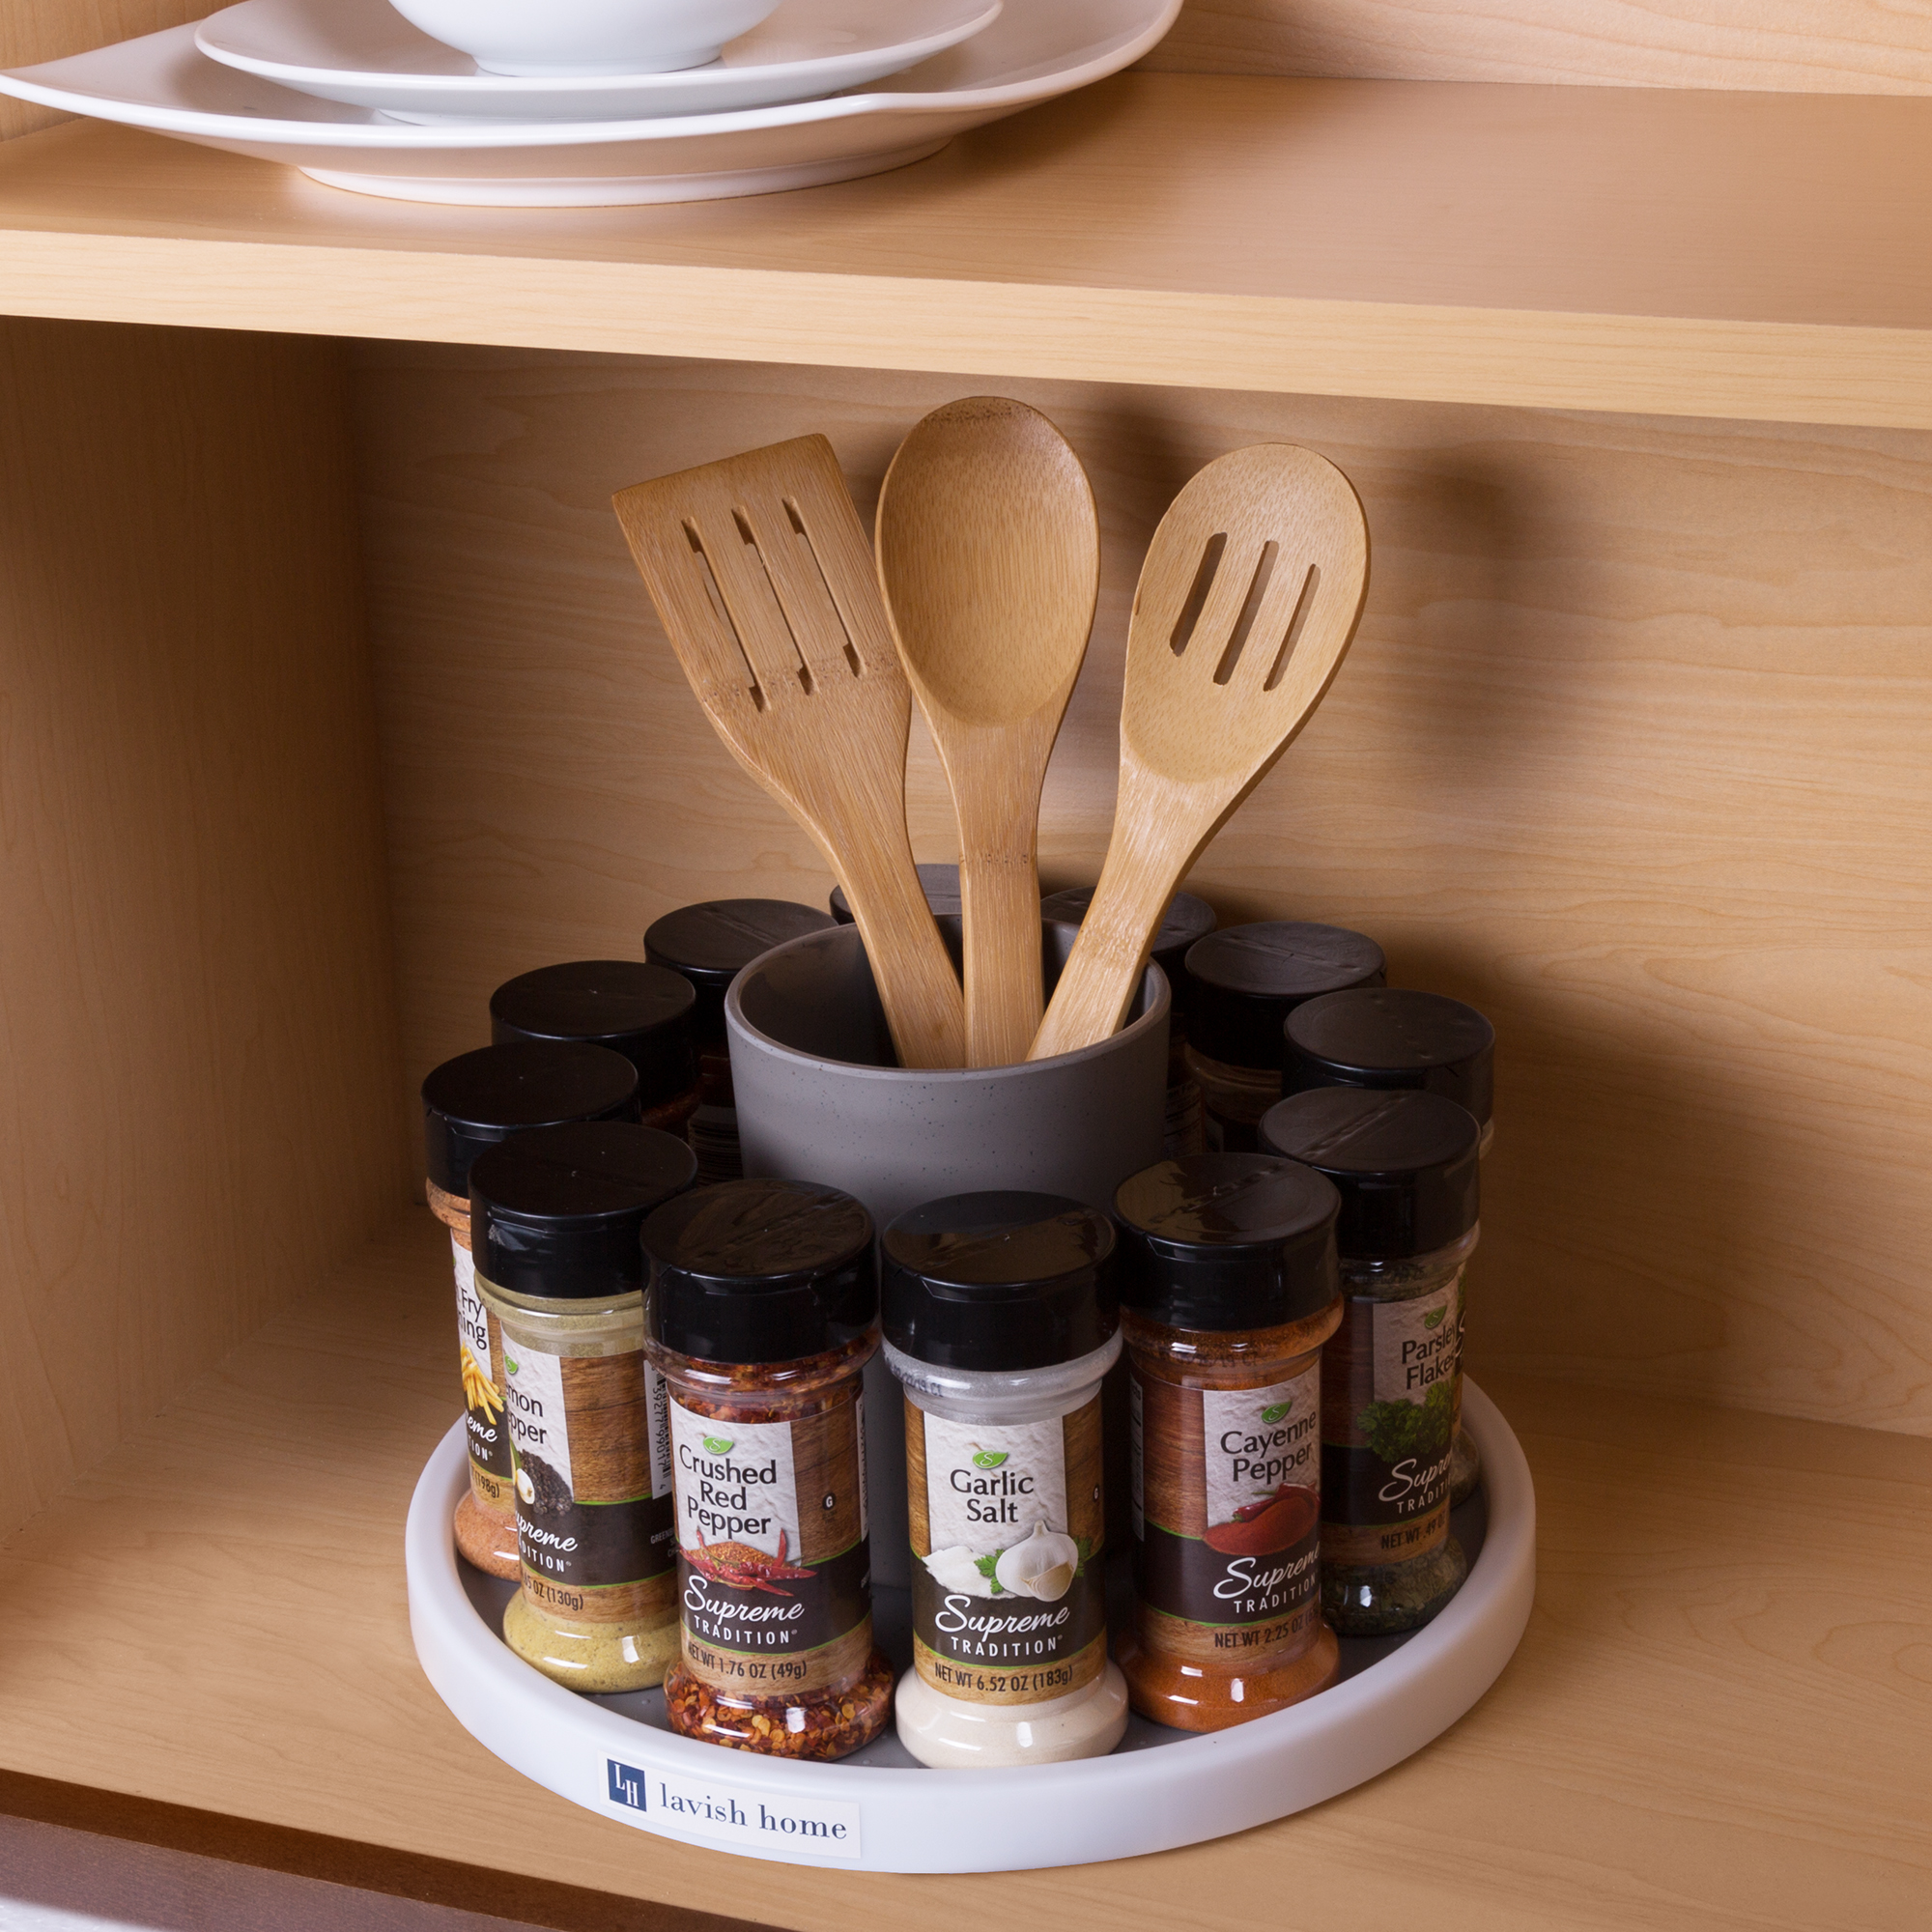 Lazy Susan Turntable Spice Rack  Rotating Cabinet, Shelf And Pantry  Organizer By Lavish Home